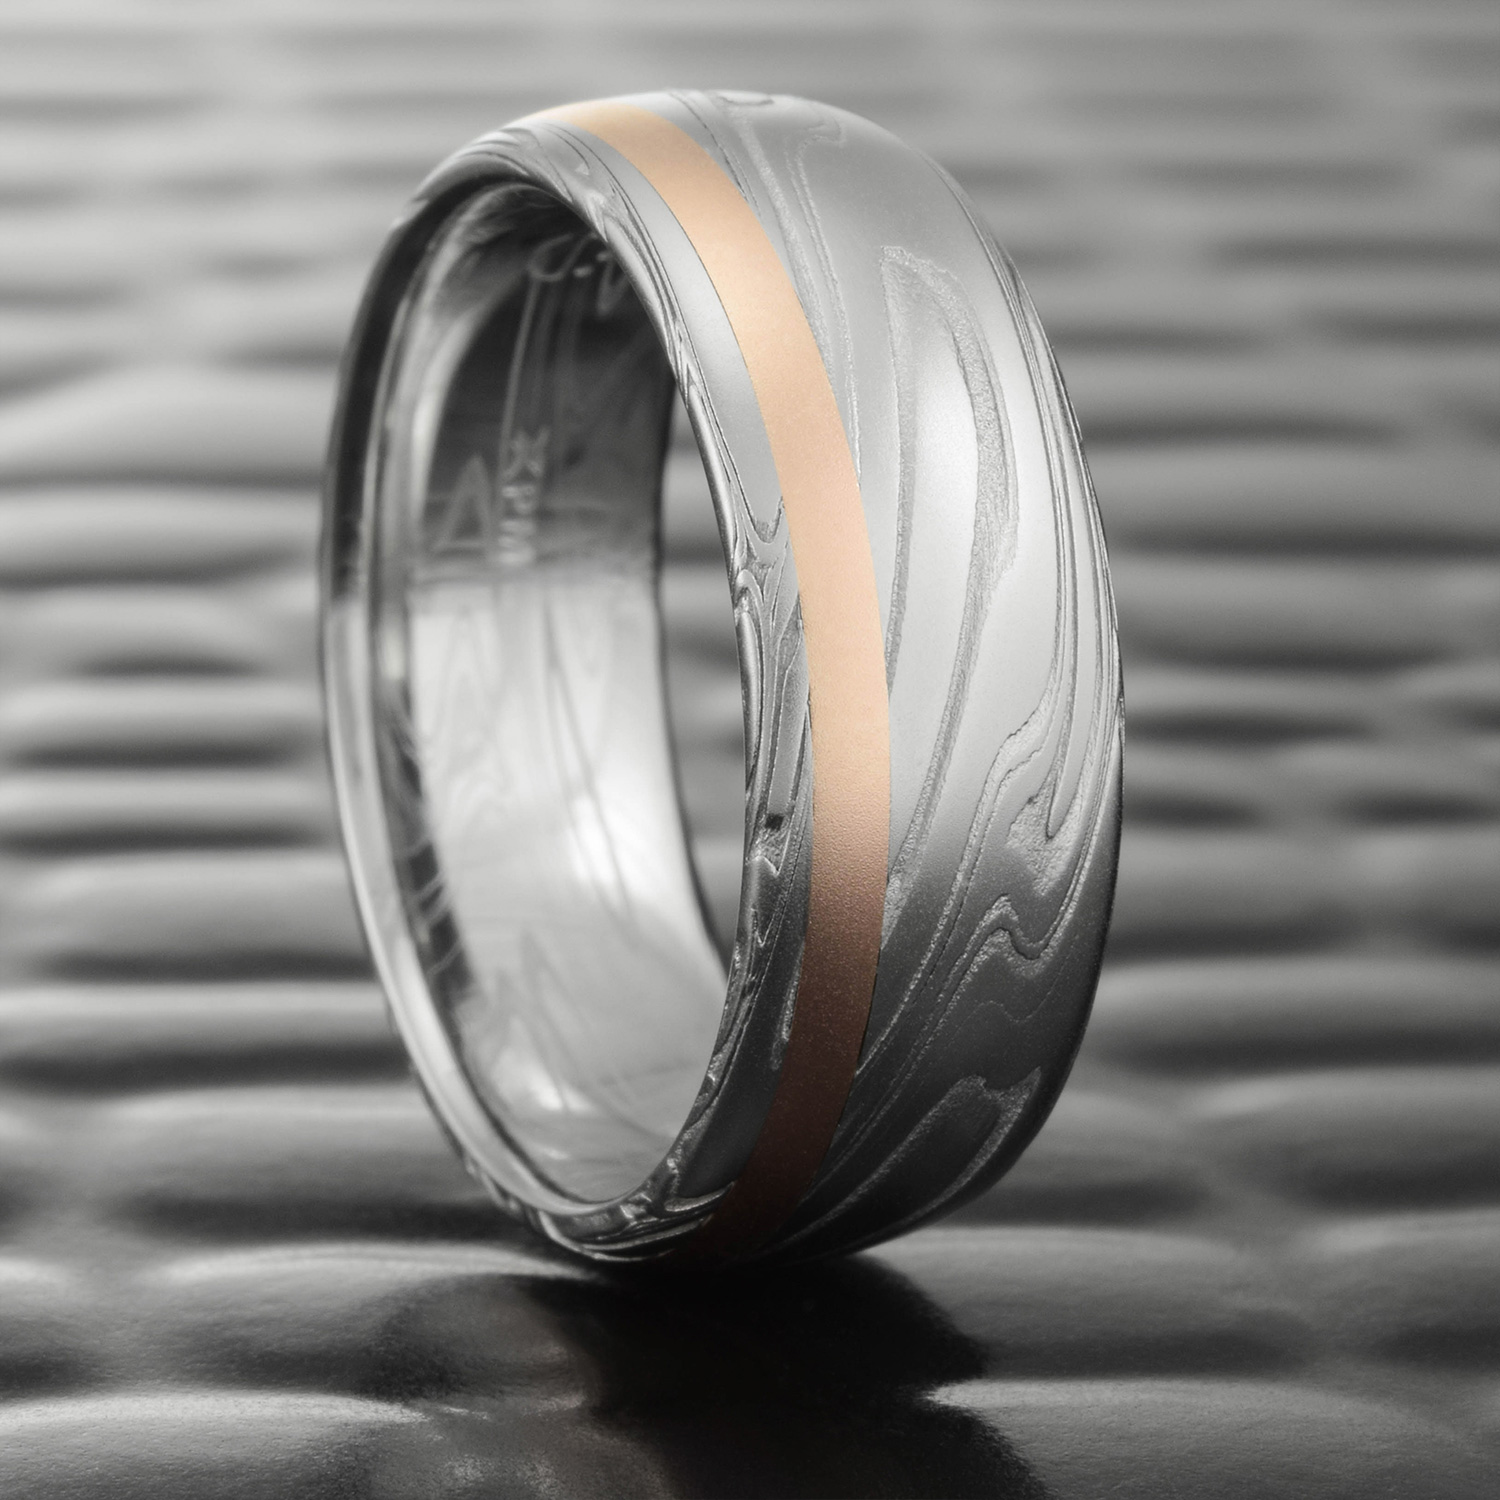 Stainless Damascus Steel Wedding Band Domed With Offset 14k Rose Gold Inlay Swirling Current Steven Jacob